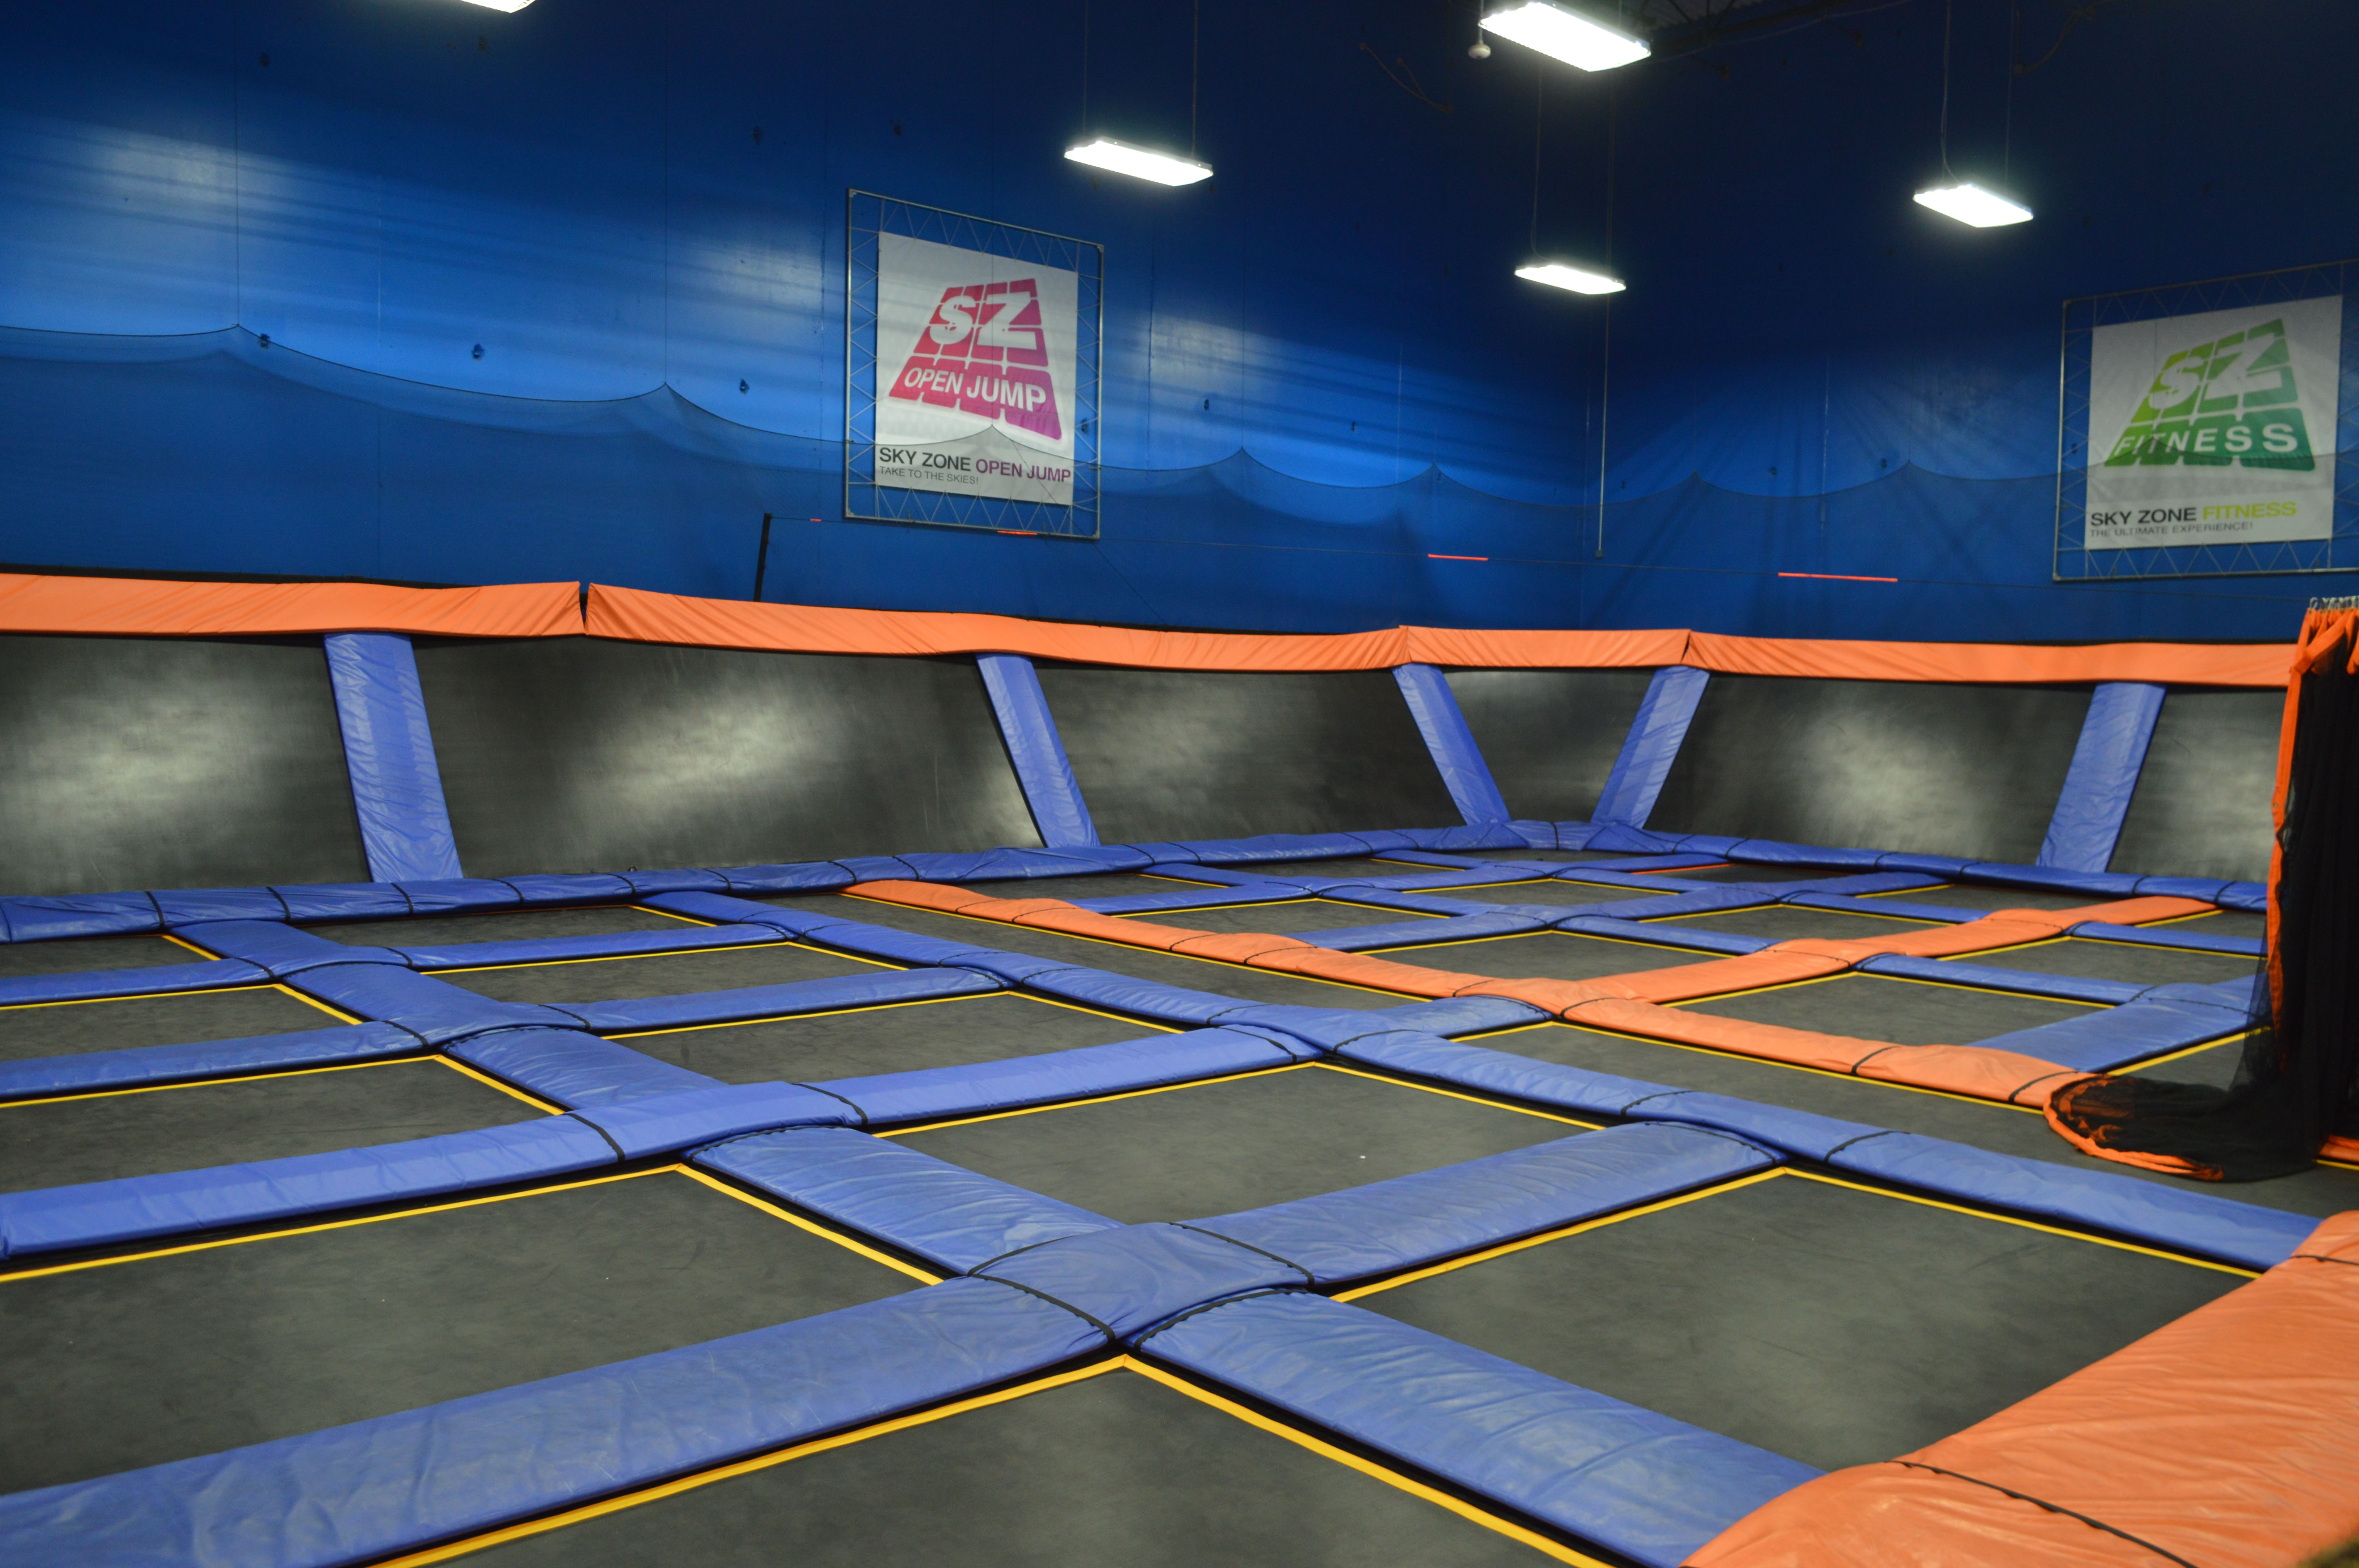 Skyzone Zwembad Shorebeat Spotlight: Skyzone Delivers Fun For All Ages